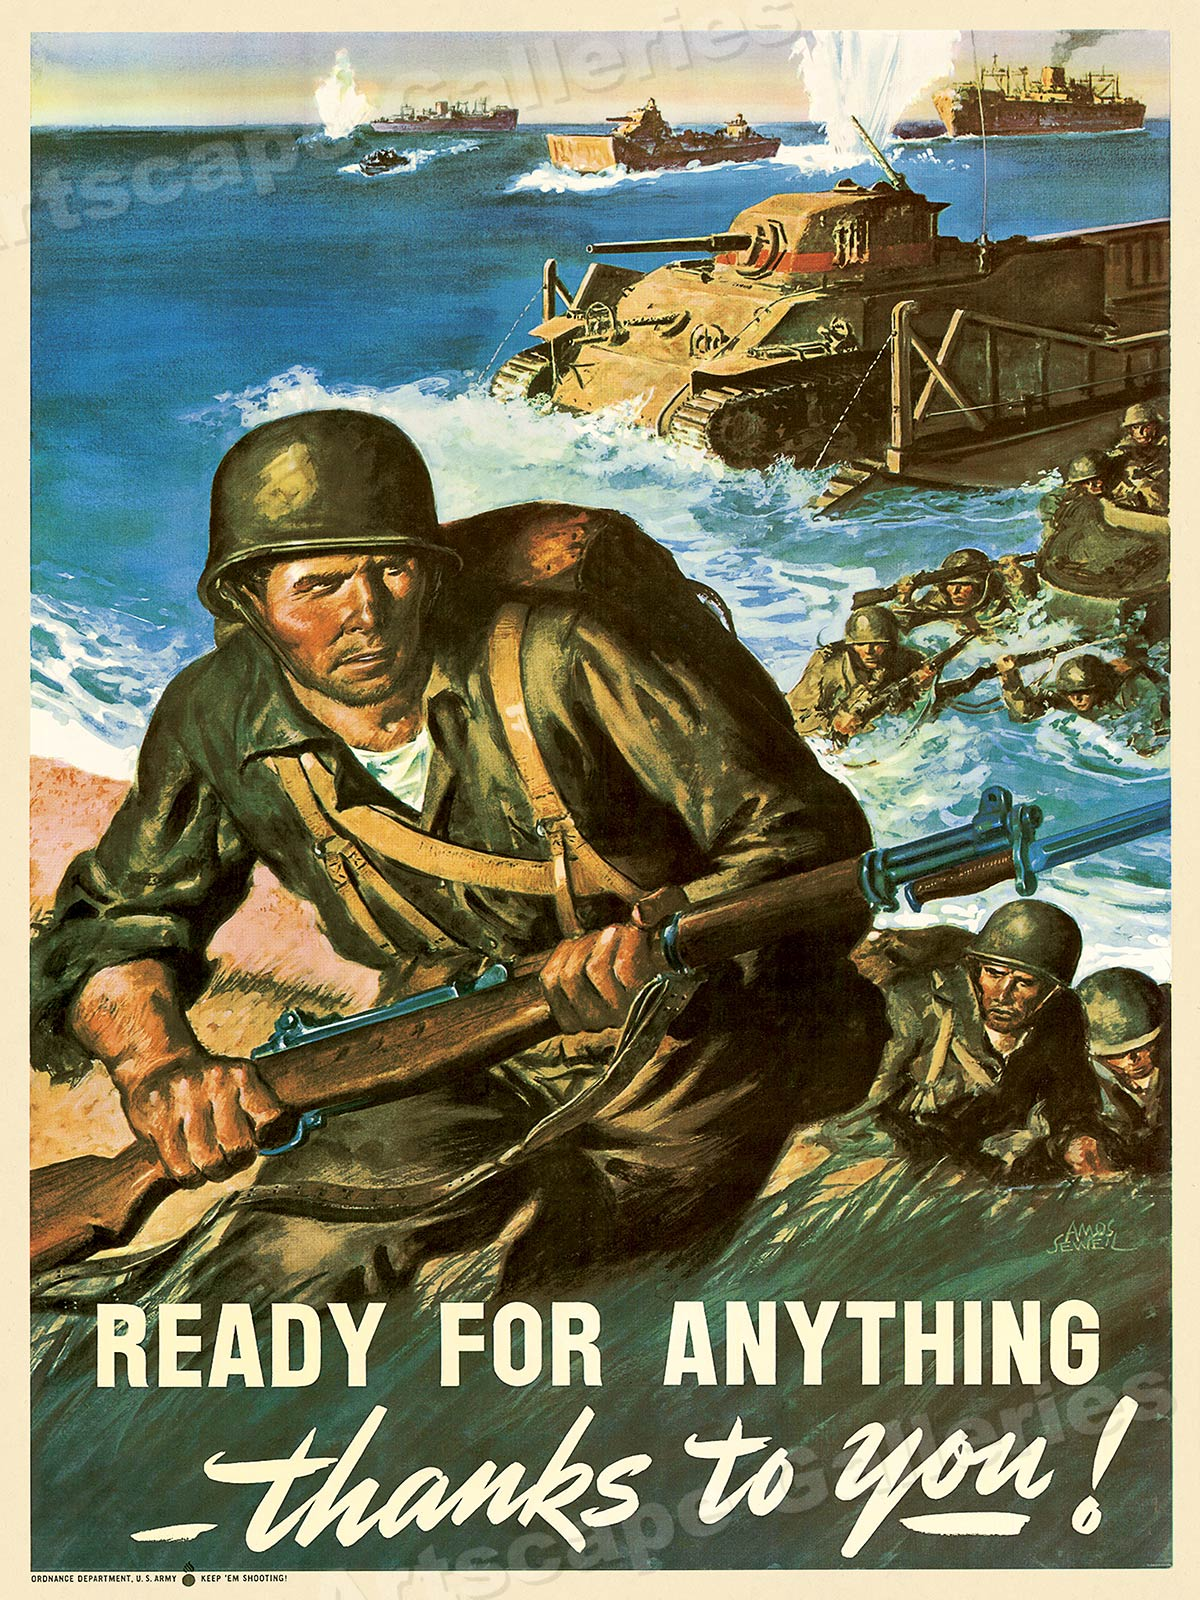 Details about Ready for Anything! Vintage Style WWII Army War Poster - 18x24